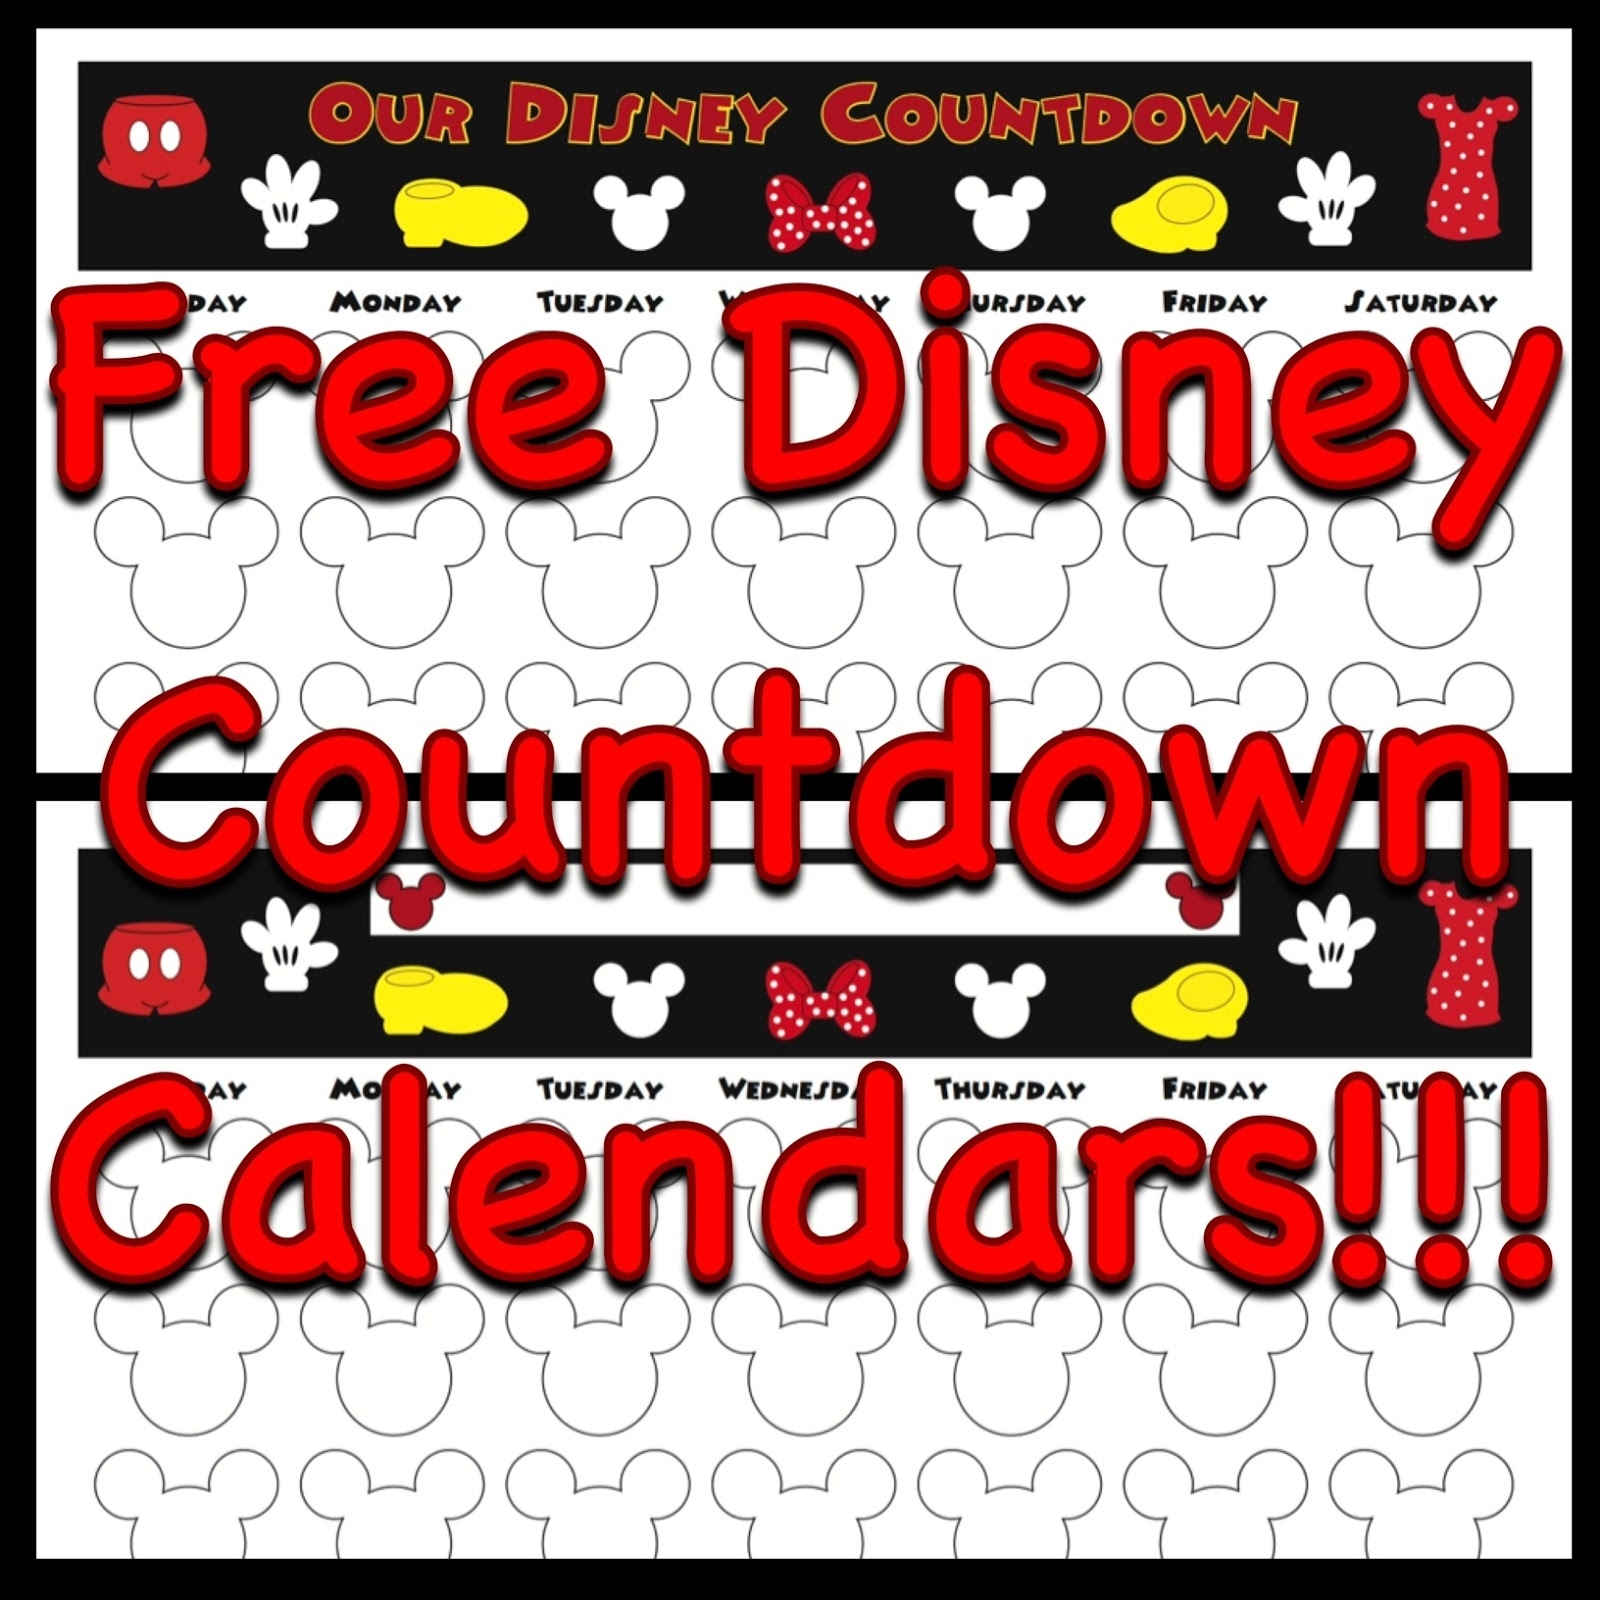 My Disney Life: Countdown Calendars Countdown Calendar Printable Disney